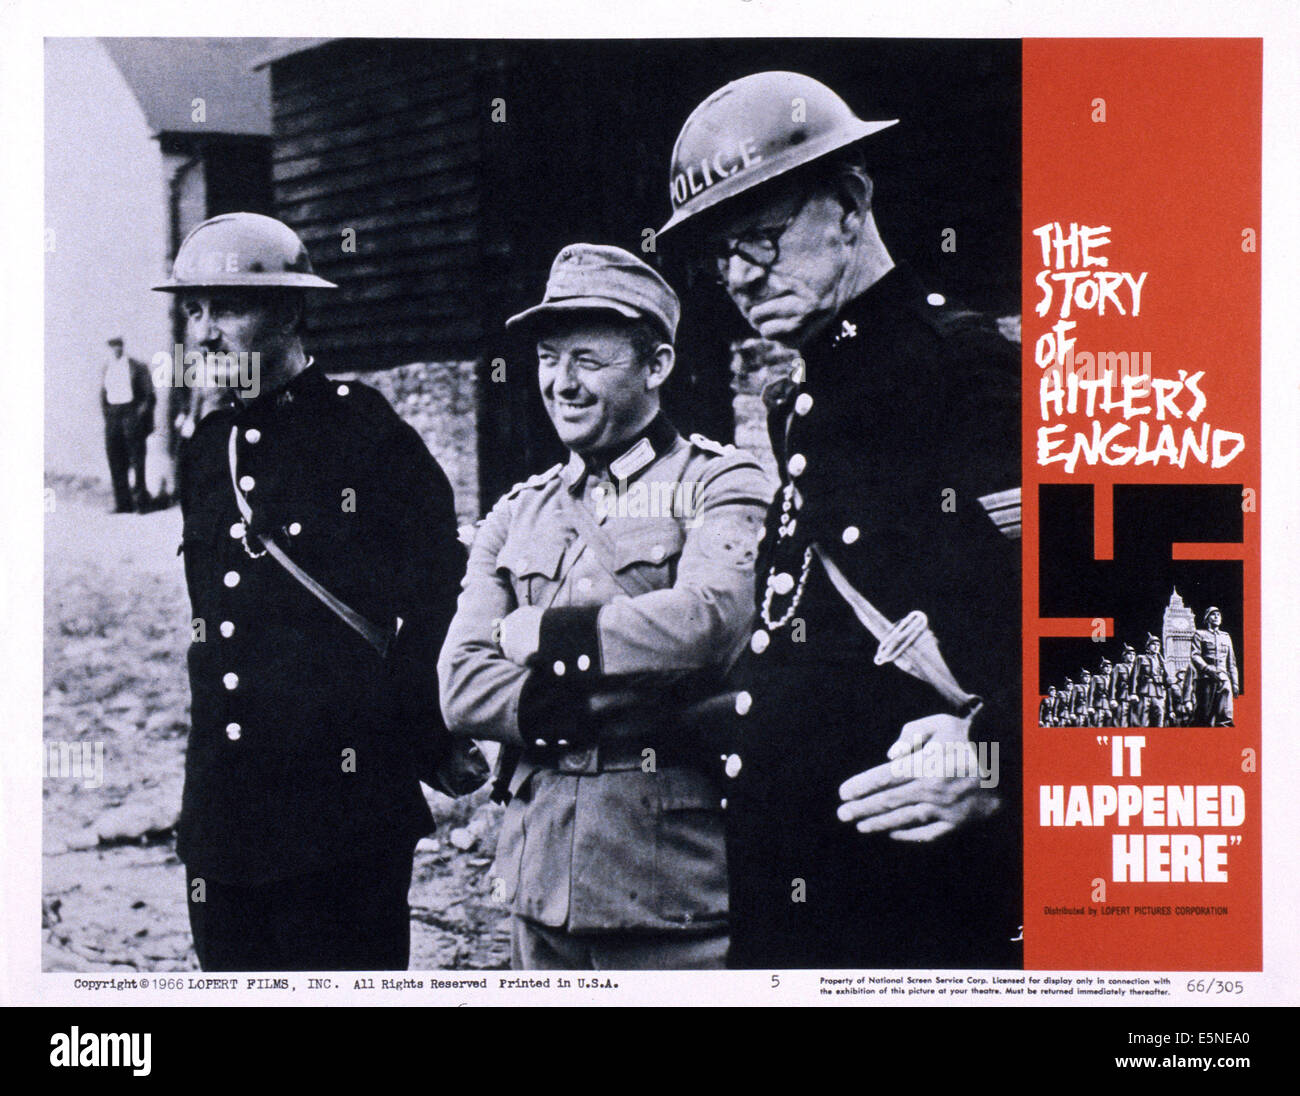 IT HAPPENED HERE, 1965 - Stock Image